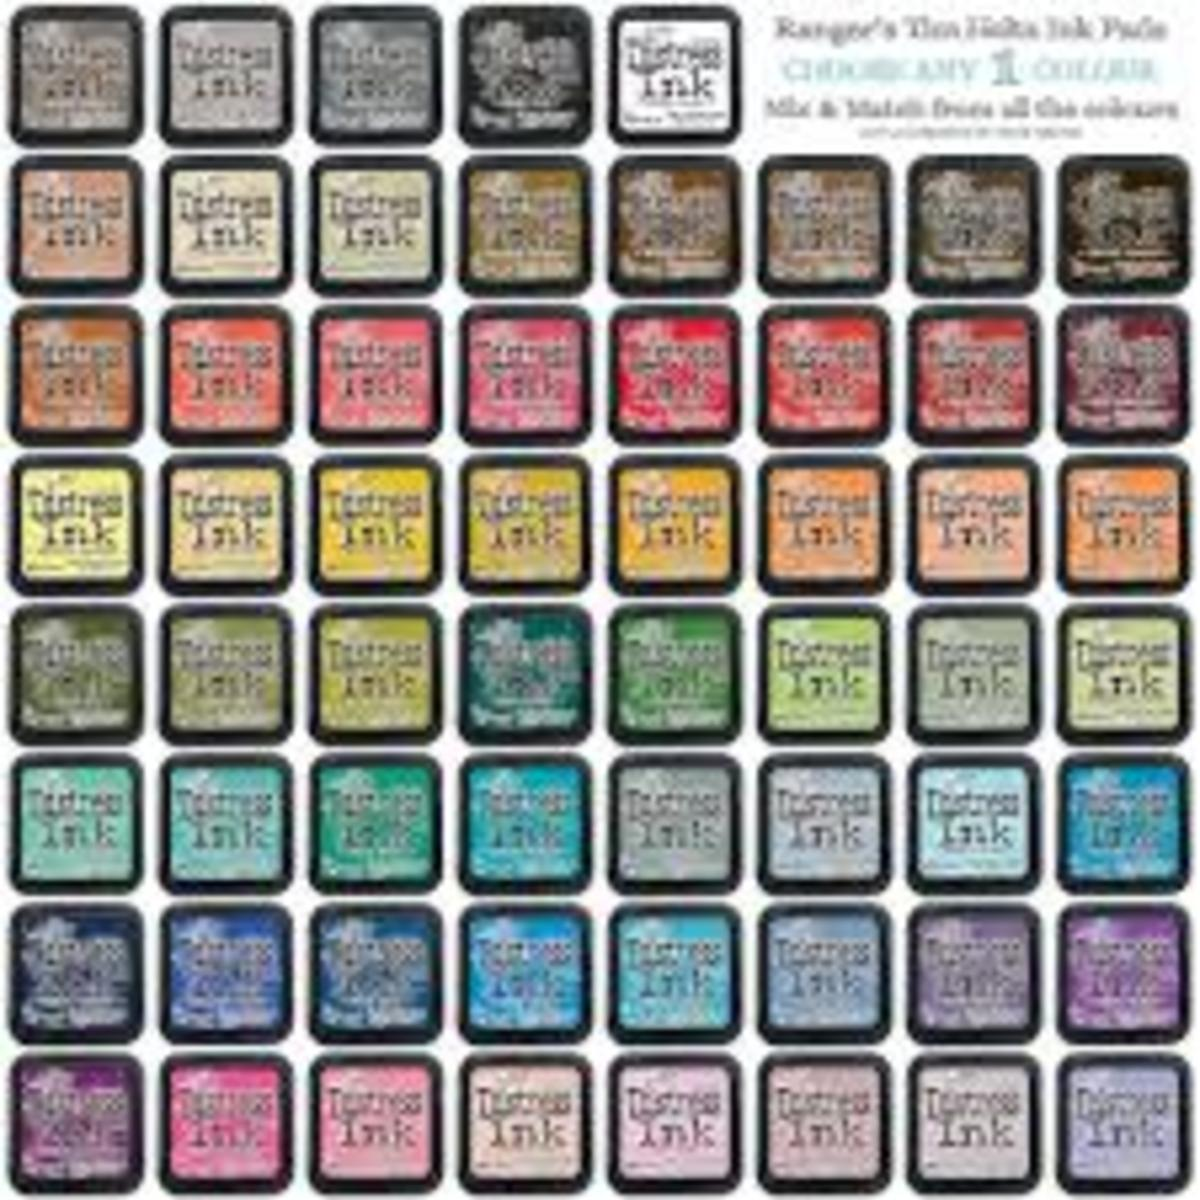 There are currently 61 shades of distress inks in the Ranger Tim Holtz line